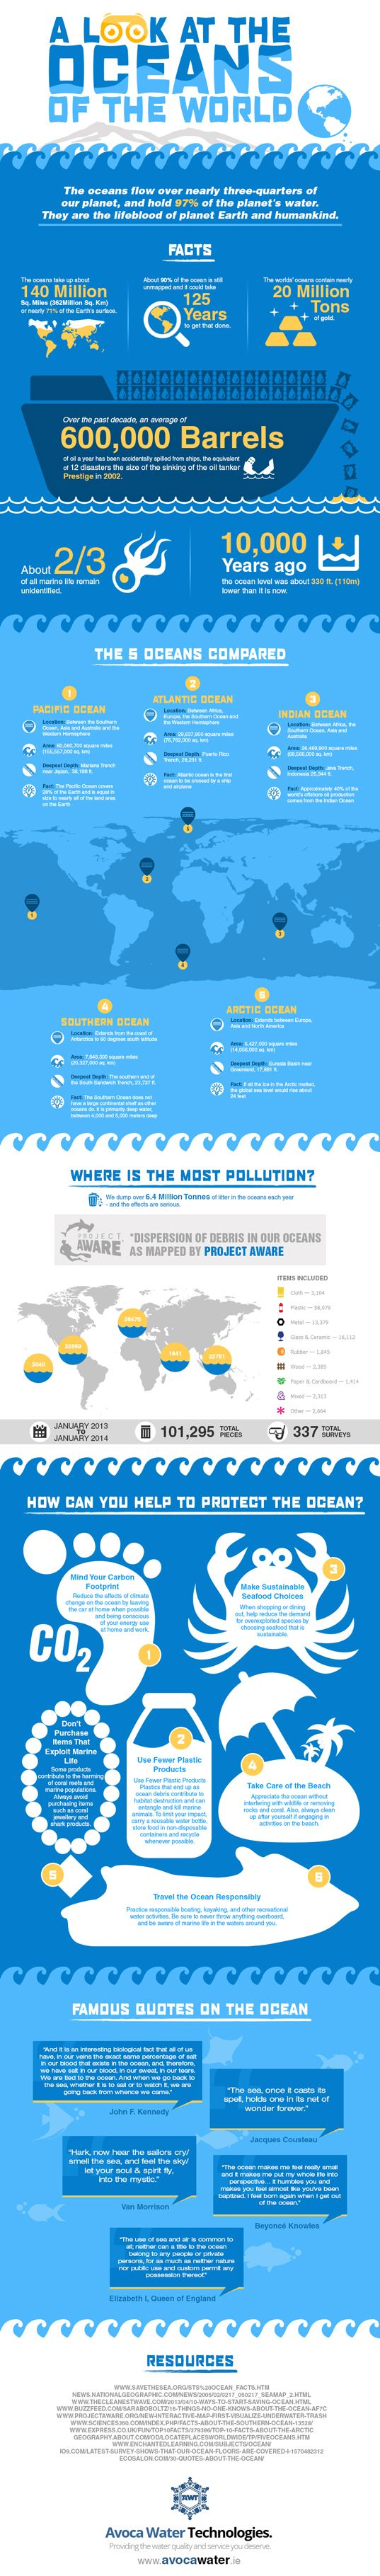 A Look at Earth's Oceans, and How We Can Help to Keep Them Healthy http://bit.ly/XWzxak